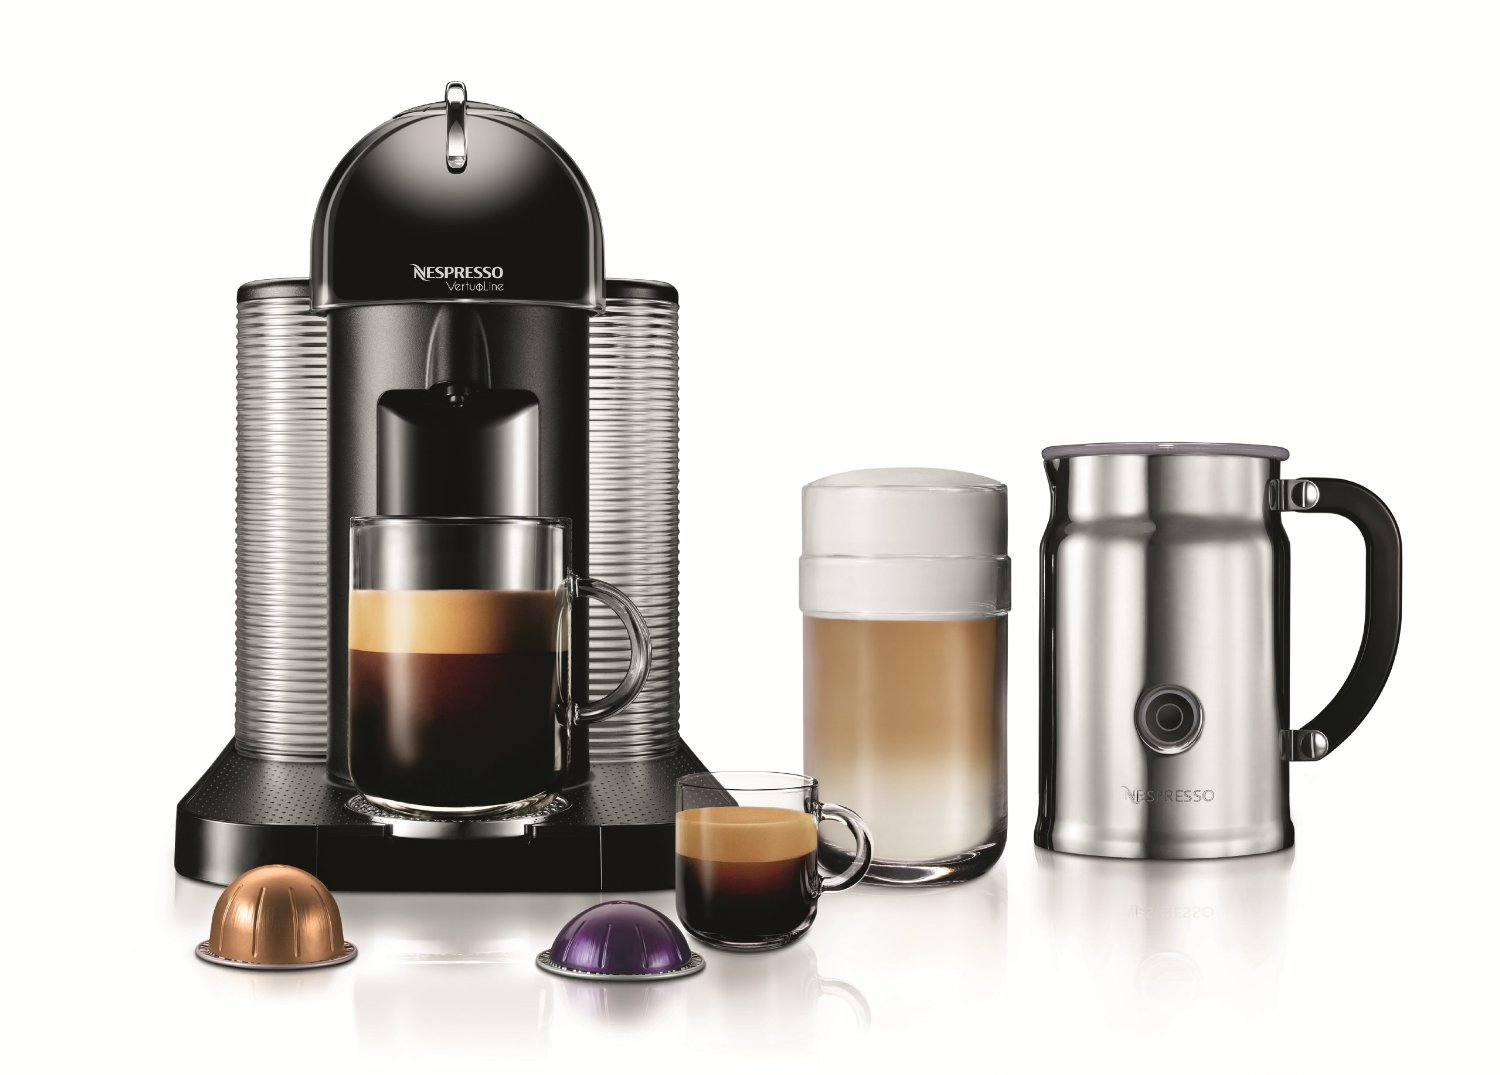 Nespresso VertuoLine Coffee and Espresso Maker at Amazon